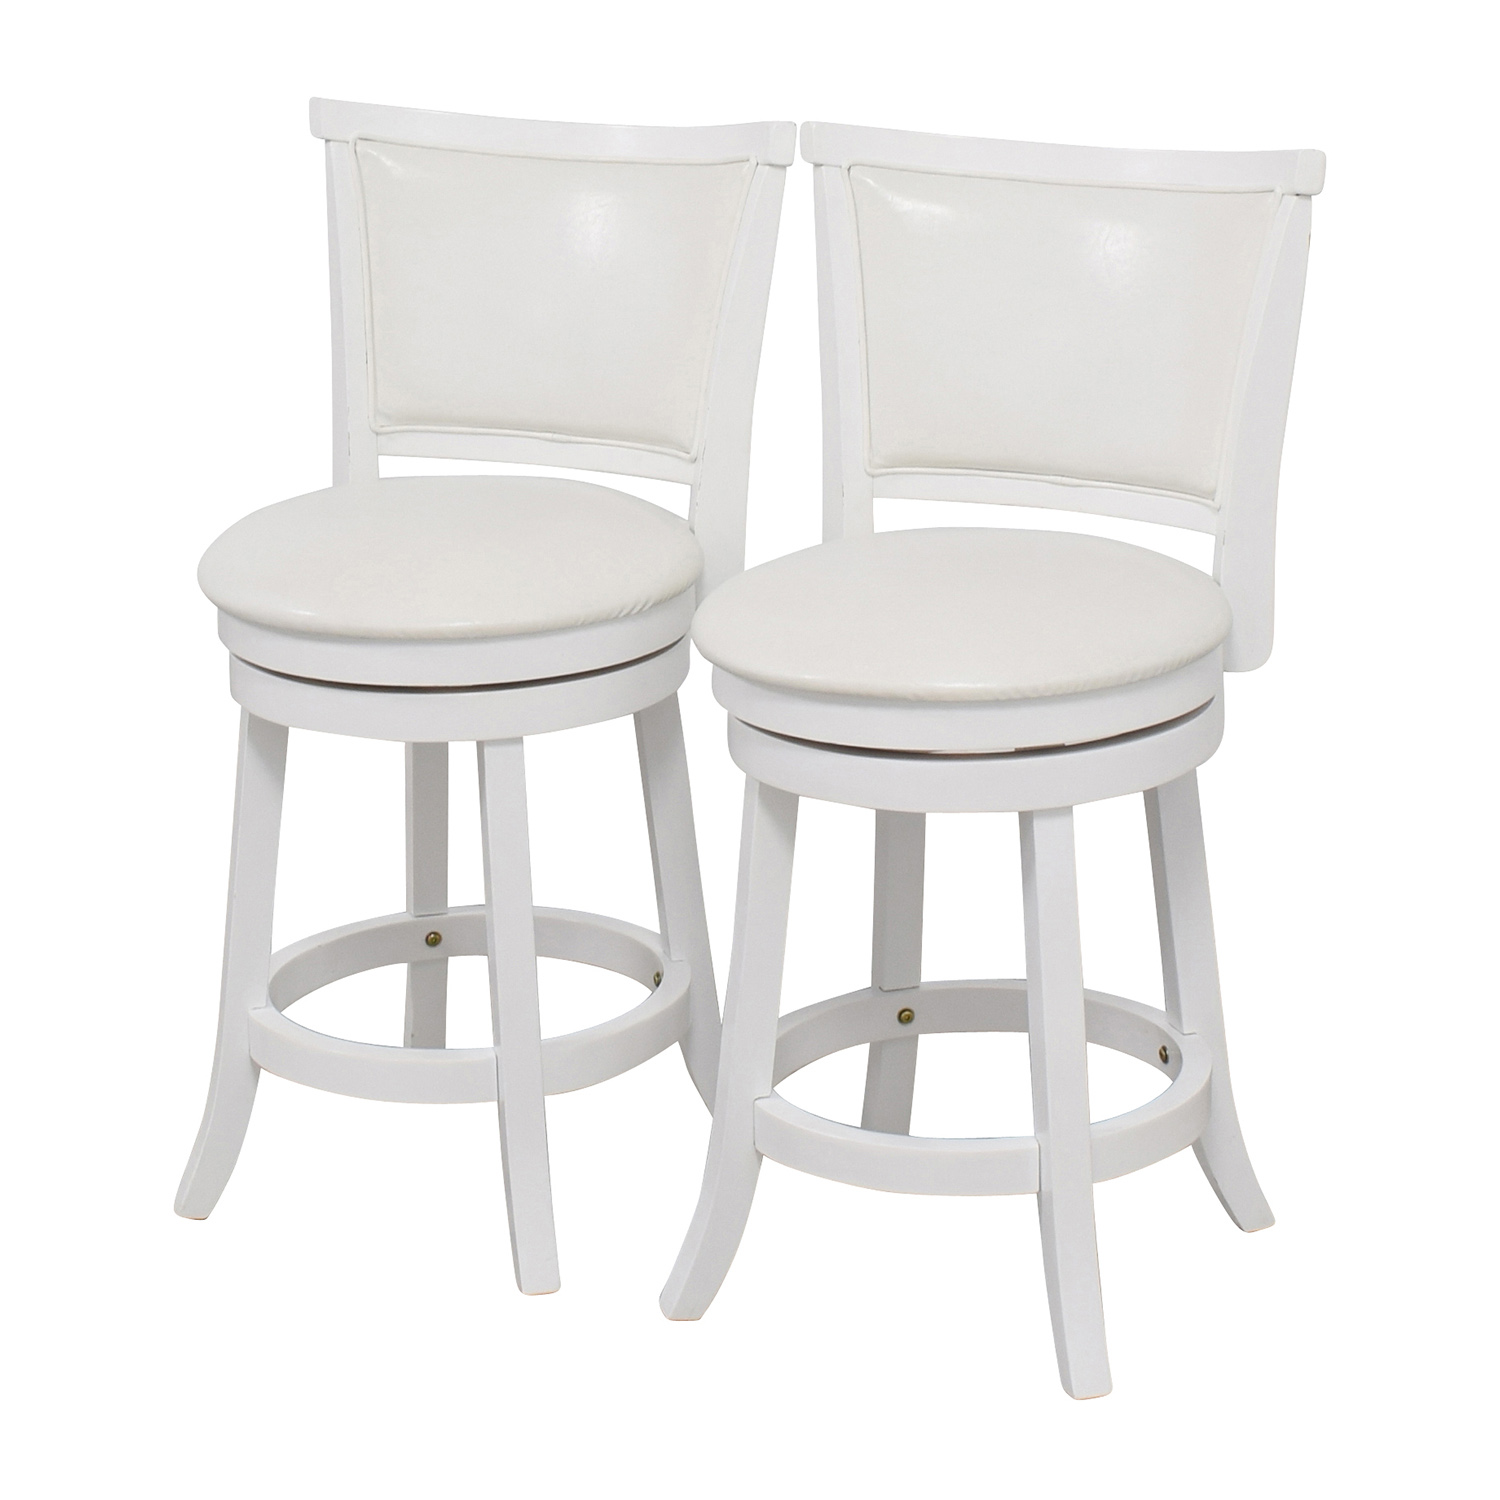 90 off corliving corliving white leatherette swivel counter height bar stool chairs. Black Bedroom Furniture Sets. Home Design Ideas